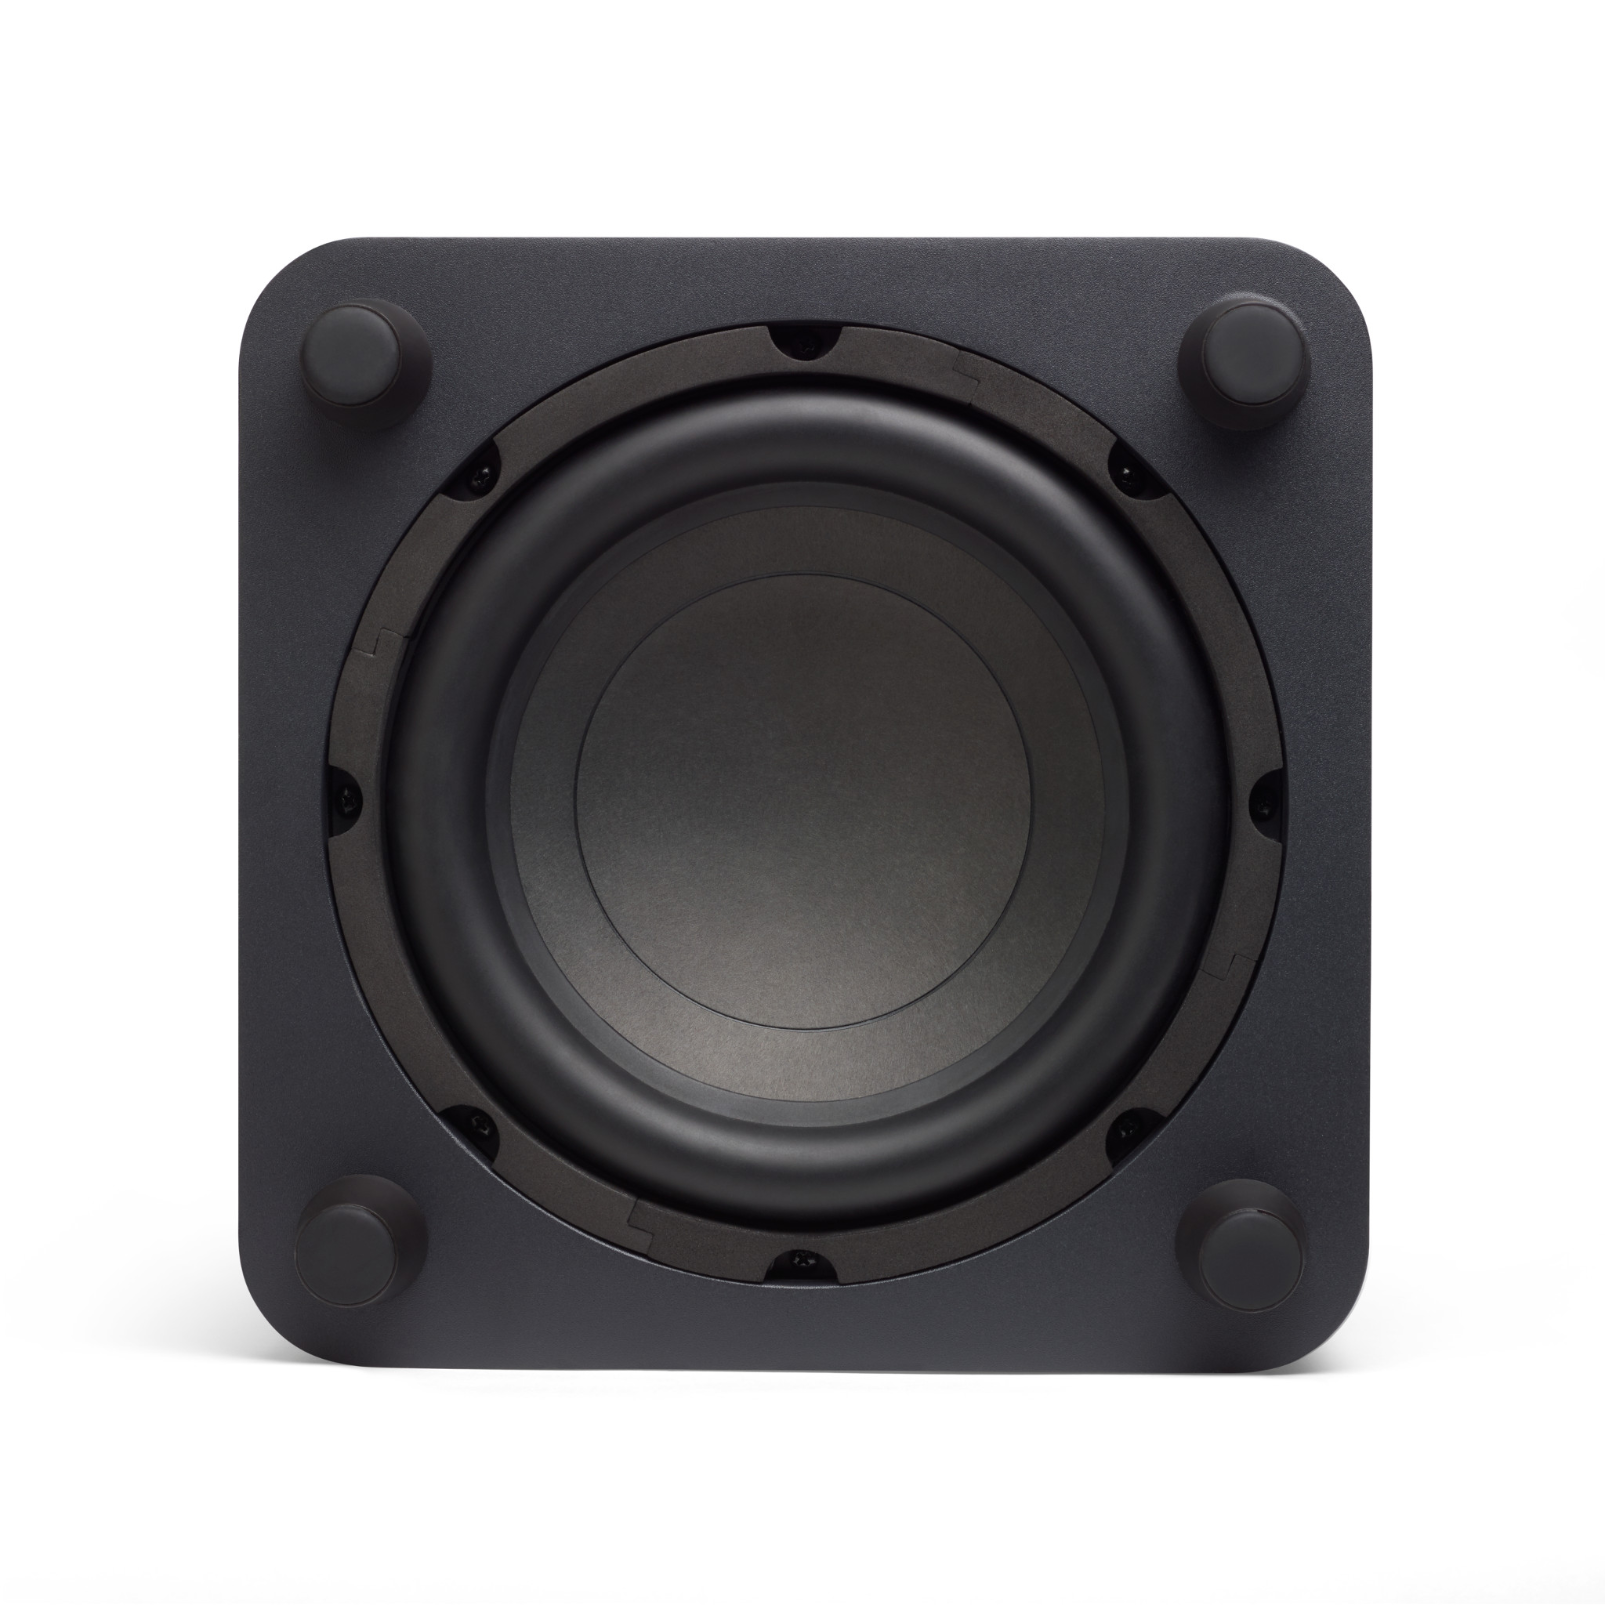 "JBL SW10 - Black - 10"" Powered Wireless Subwoofer for JBL LINK BAR - Detailshot 1"